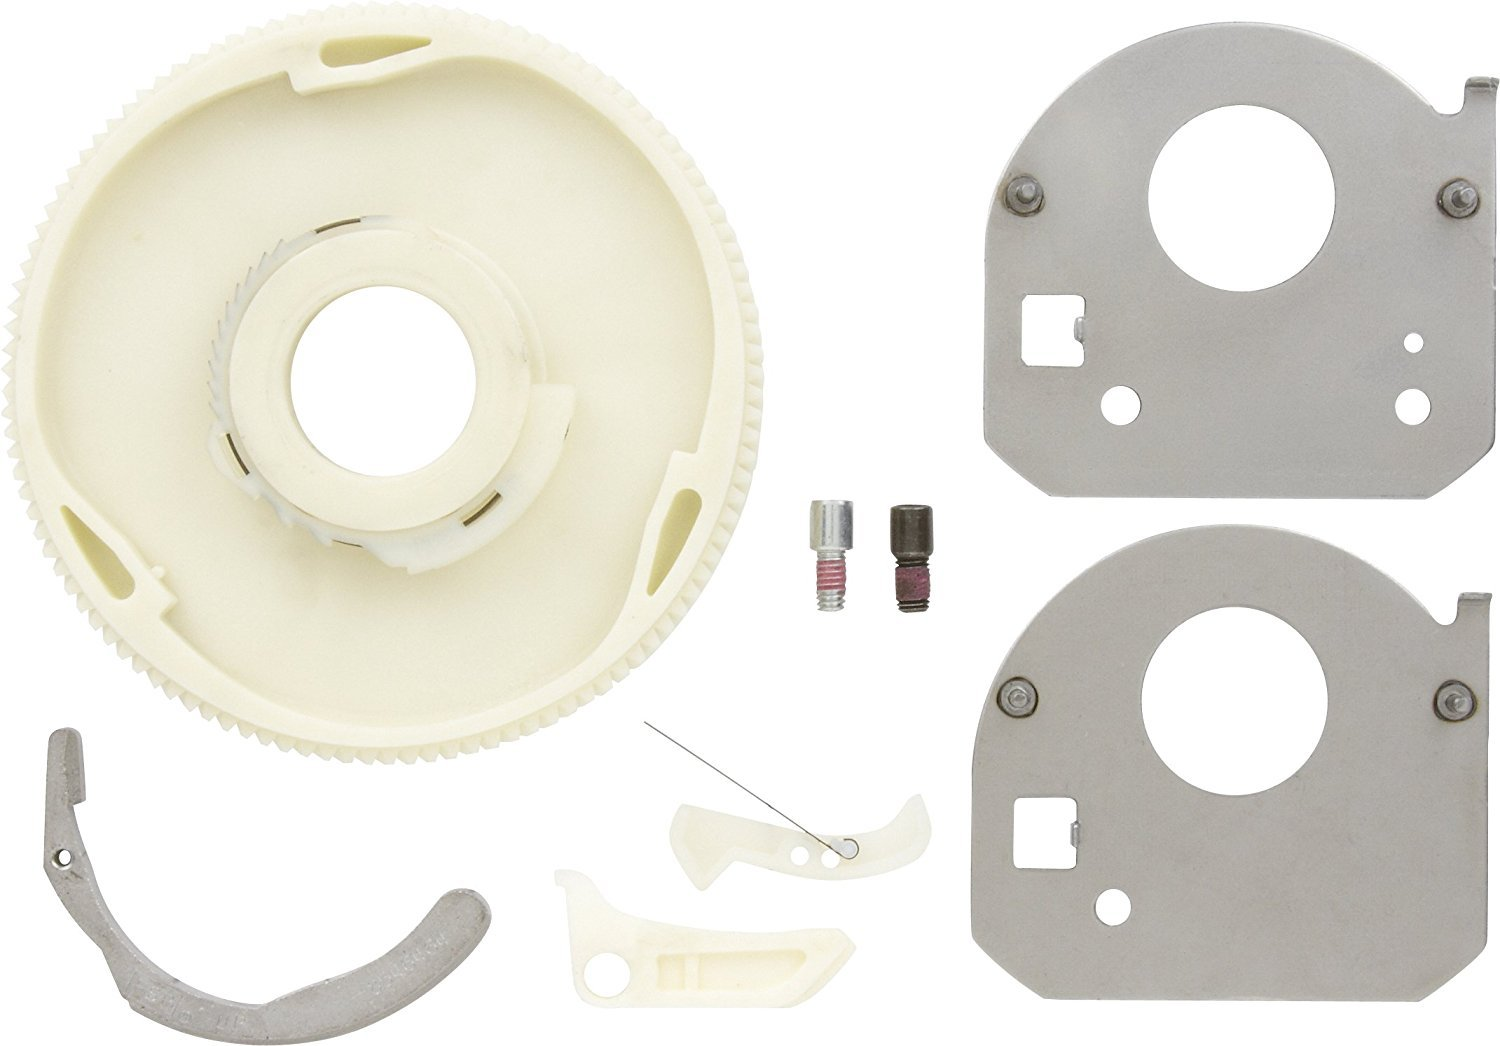 Kenmore / Sears 11025292501 Neutral Drain Kit Replacement